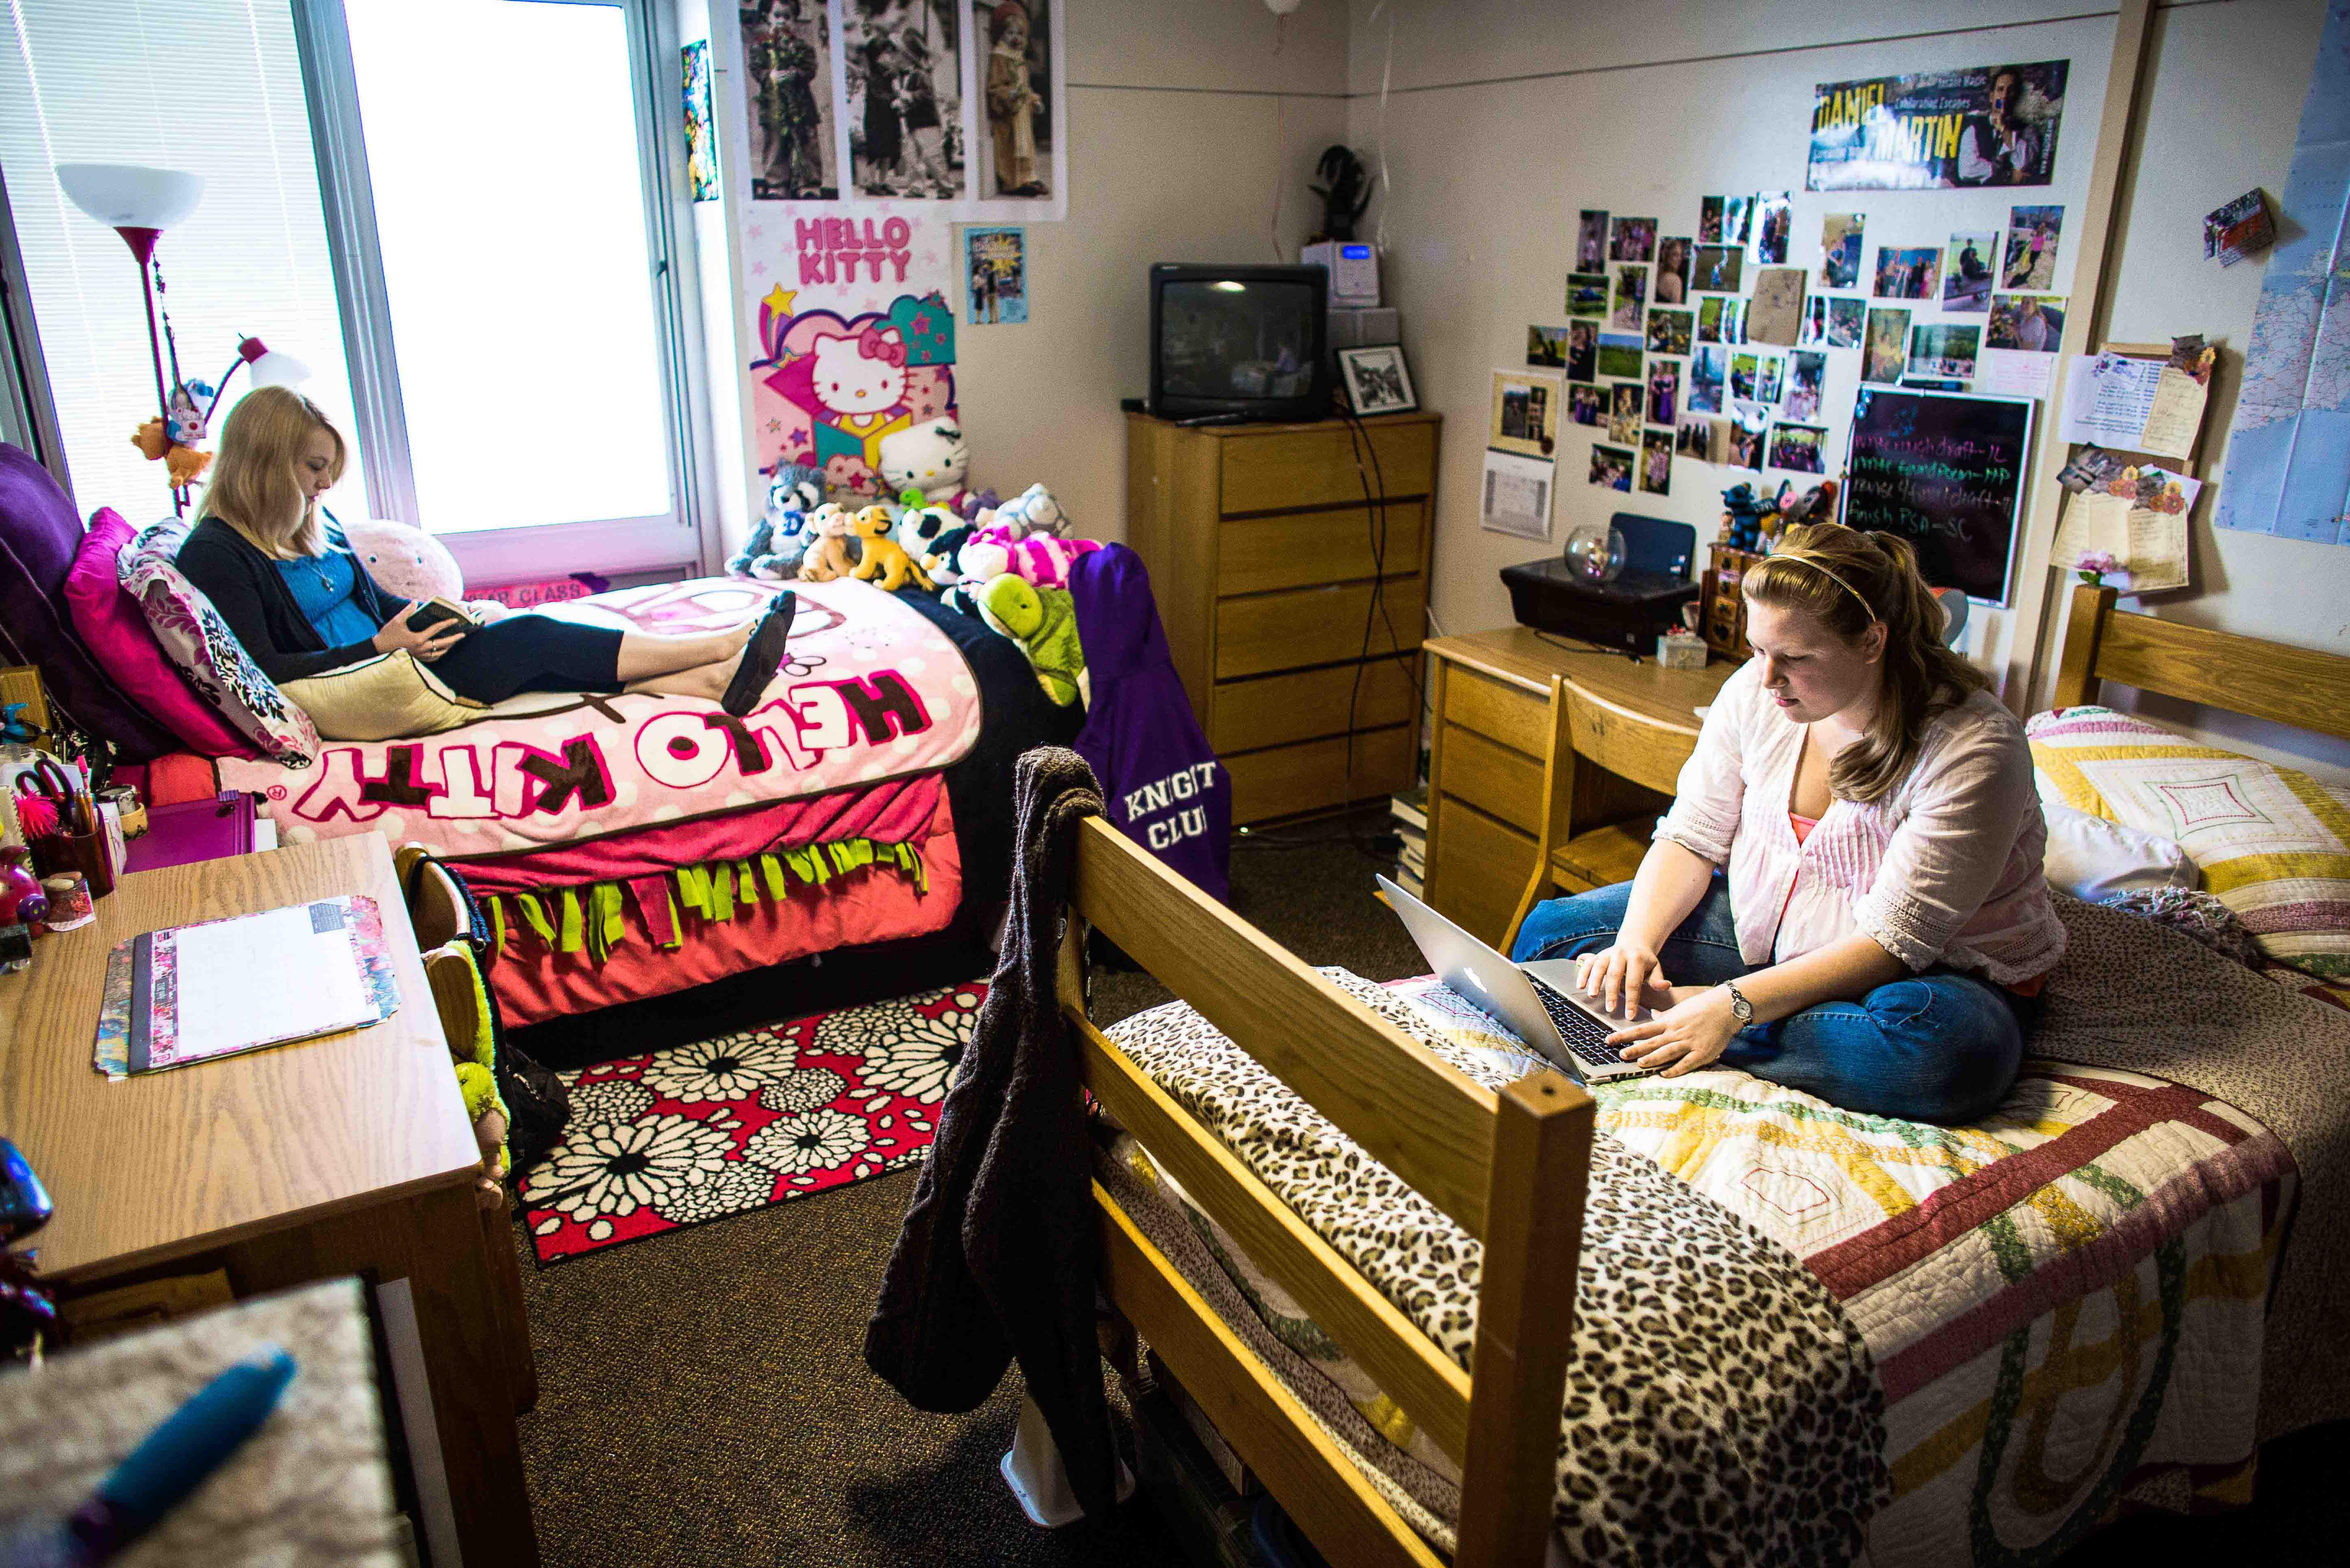 Two female students sitting on their beds working in their dorm room.